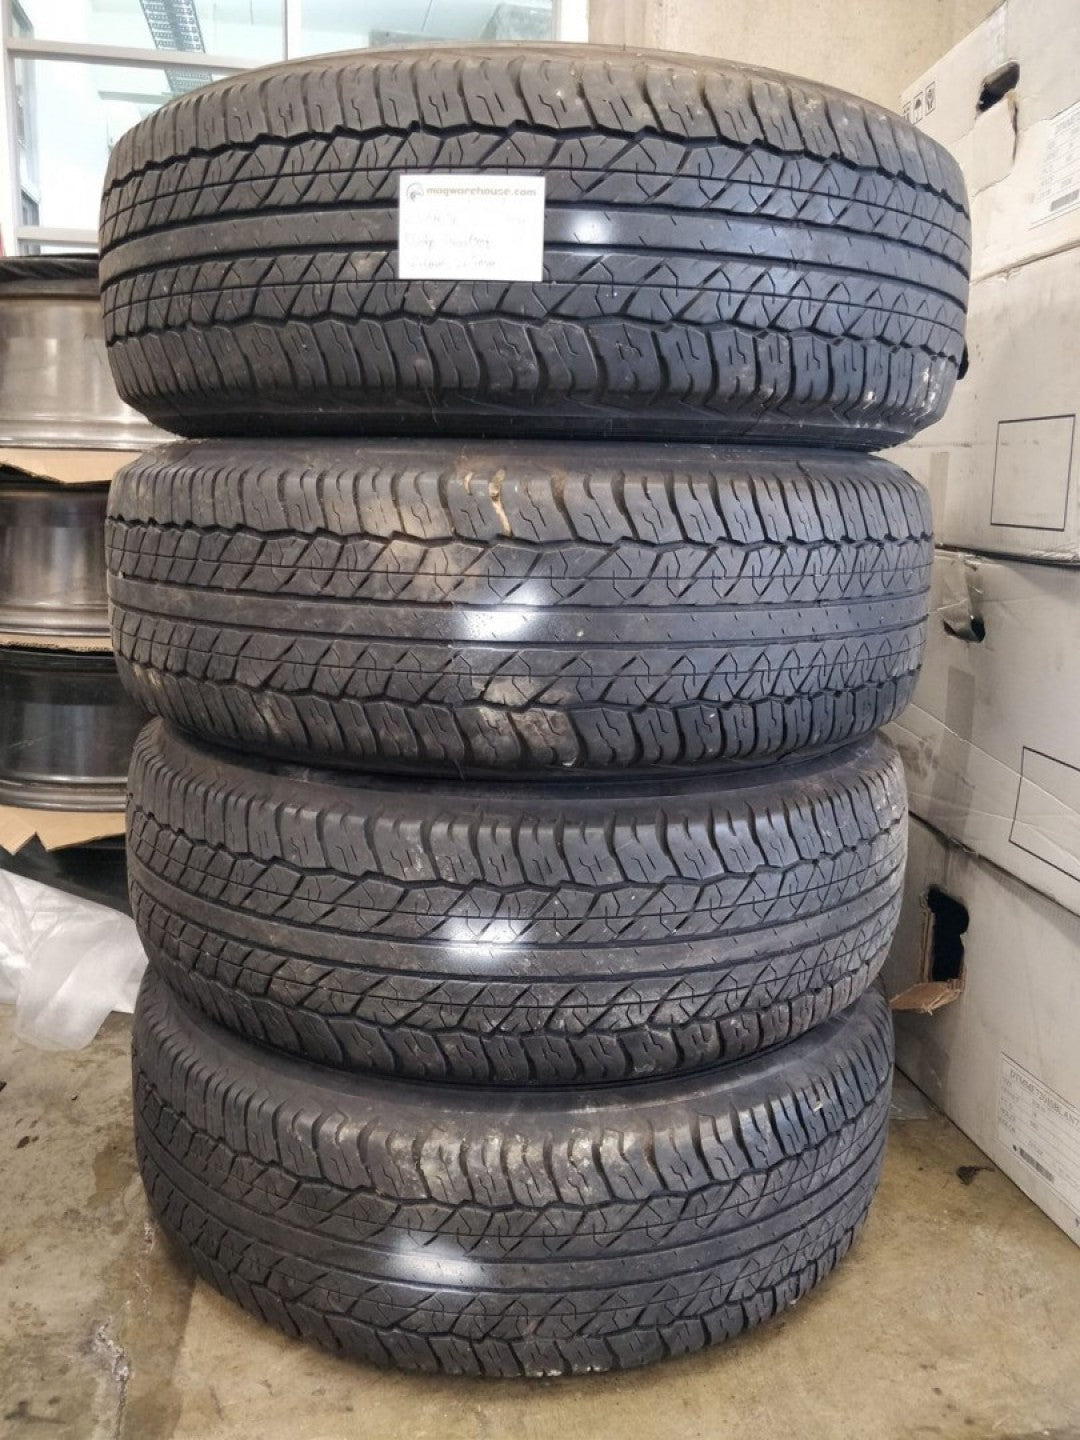 4x Dunlop Grandtrek 255/70R16 111H Tyres 2x5mm 2x6mm free fitting in buynow